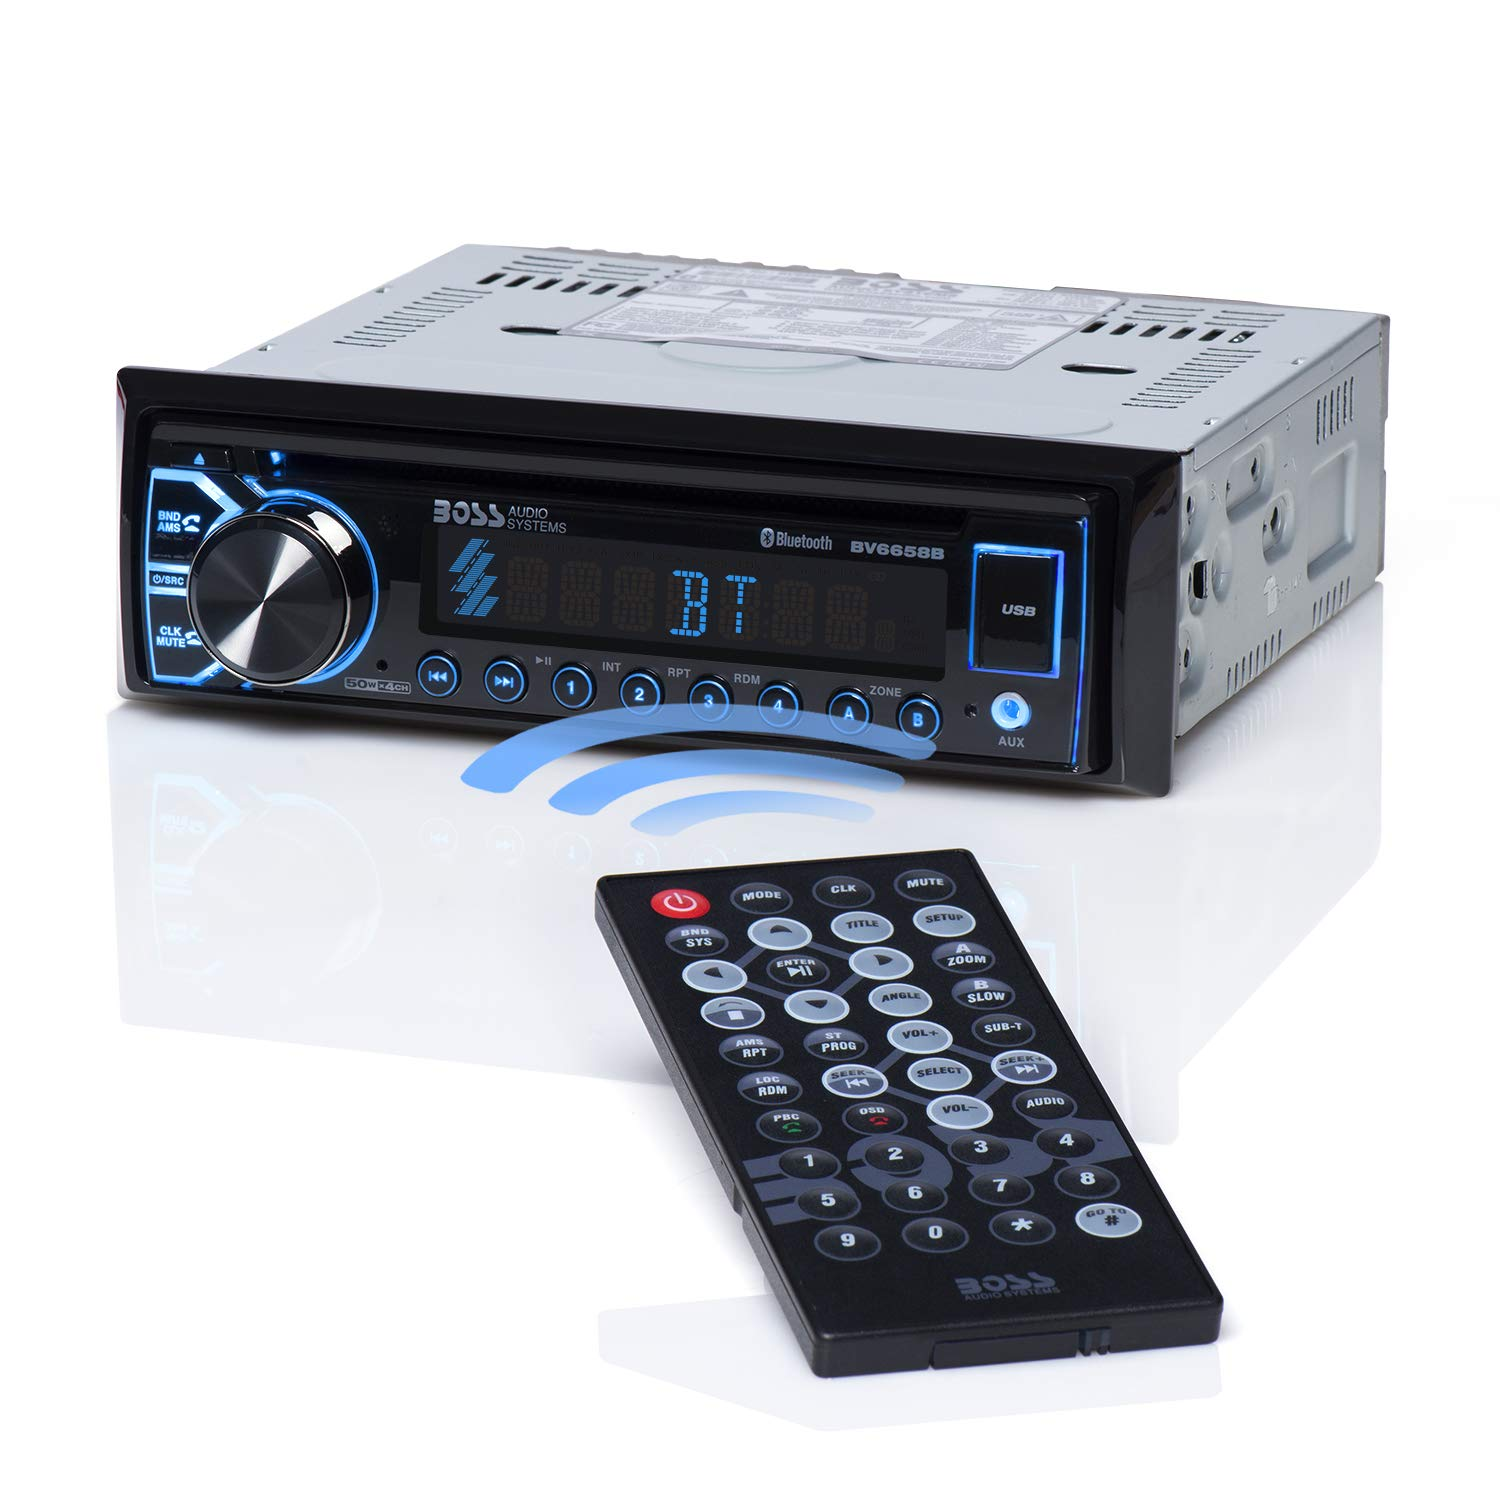 BOSS Audio BV6658B Car Stereo DVD Player - Single Din, Bluetooth Audio and Hands-Free Calling, Built-in Microphone, CD/DVD/MP3/USB/AUX Input, AM/FM Radio Receiver, LCD Display, Wireless Remote Control by BOSS Audio Systems